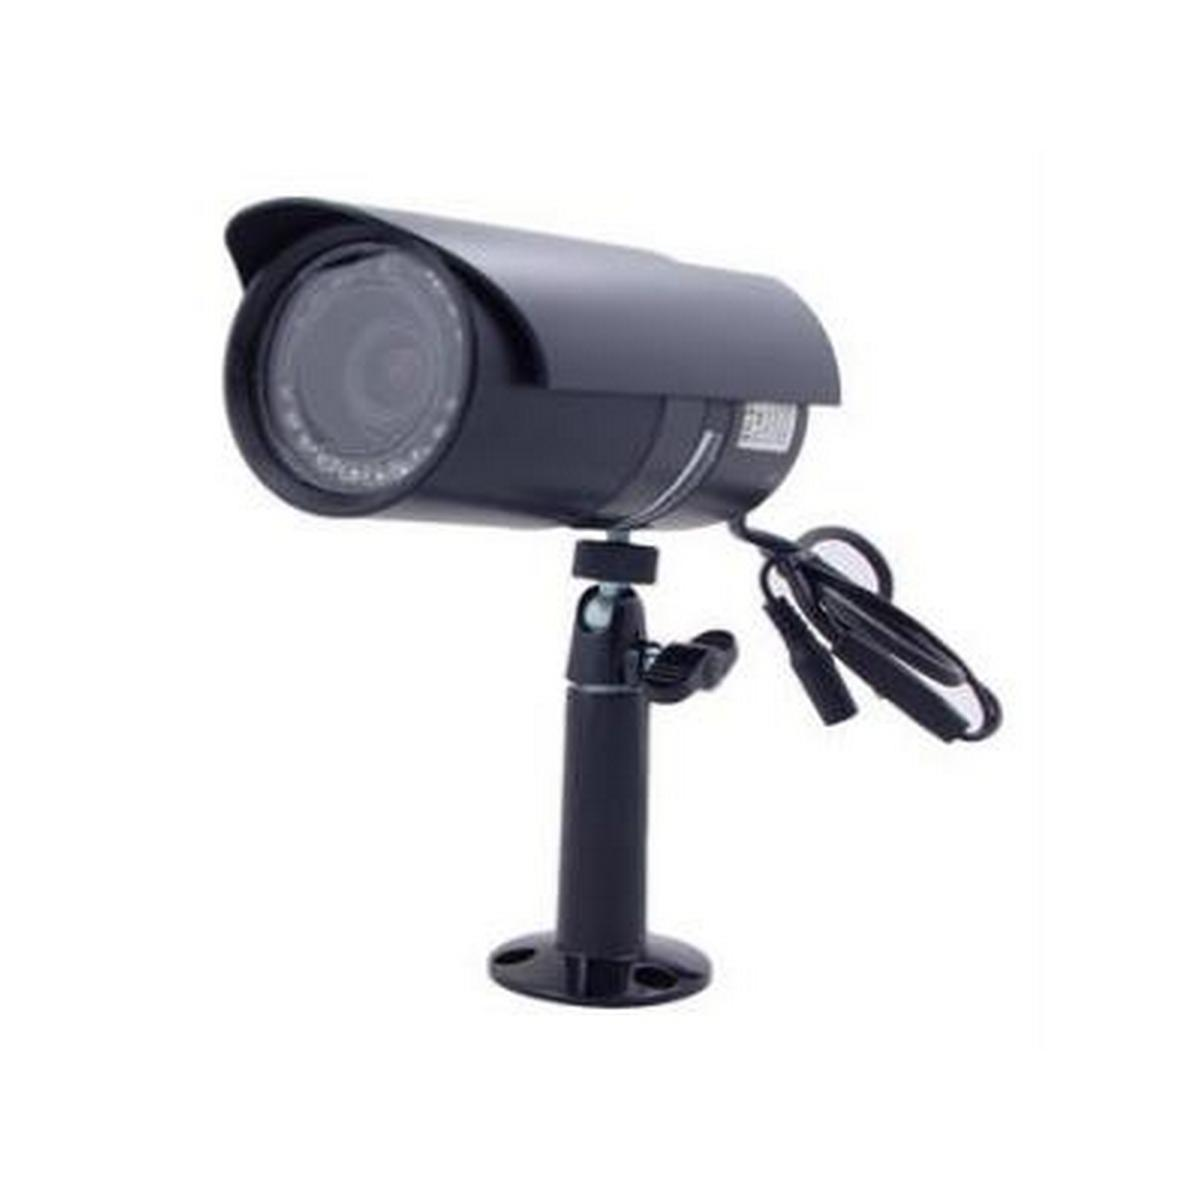 Speco VL66 Weatherproof Color Camera w/18 IR LED's, Dual Power Includes Mounting Bracket